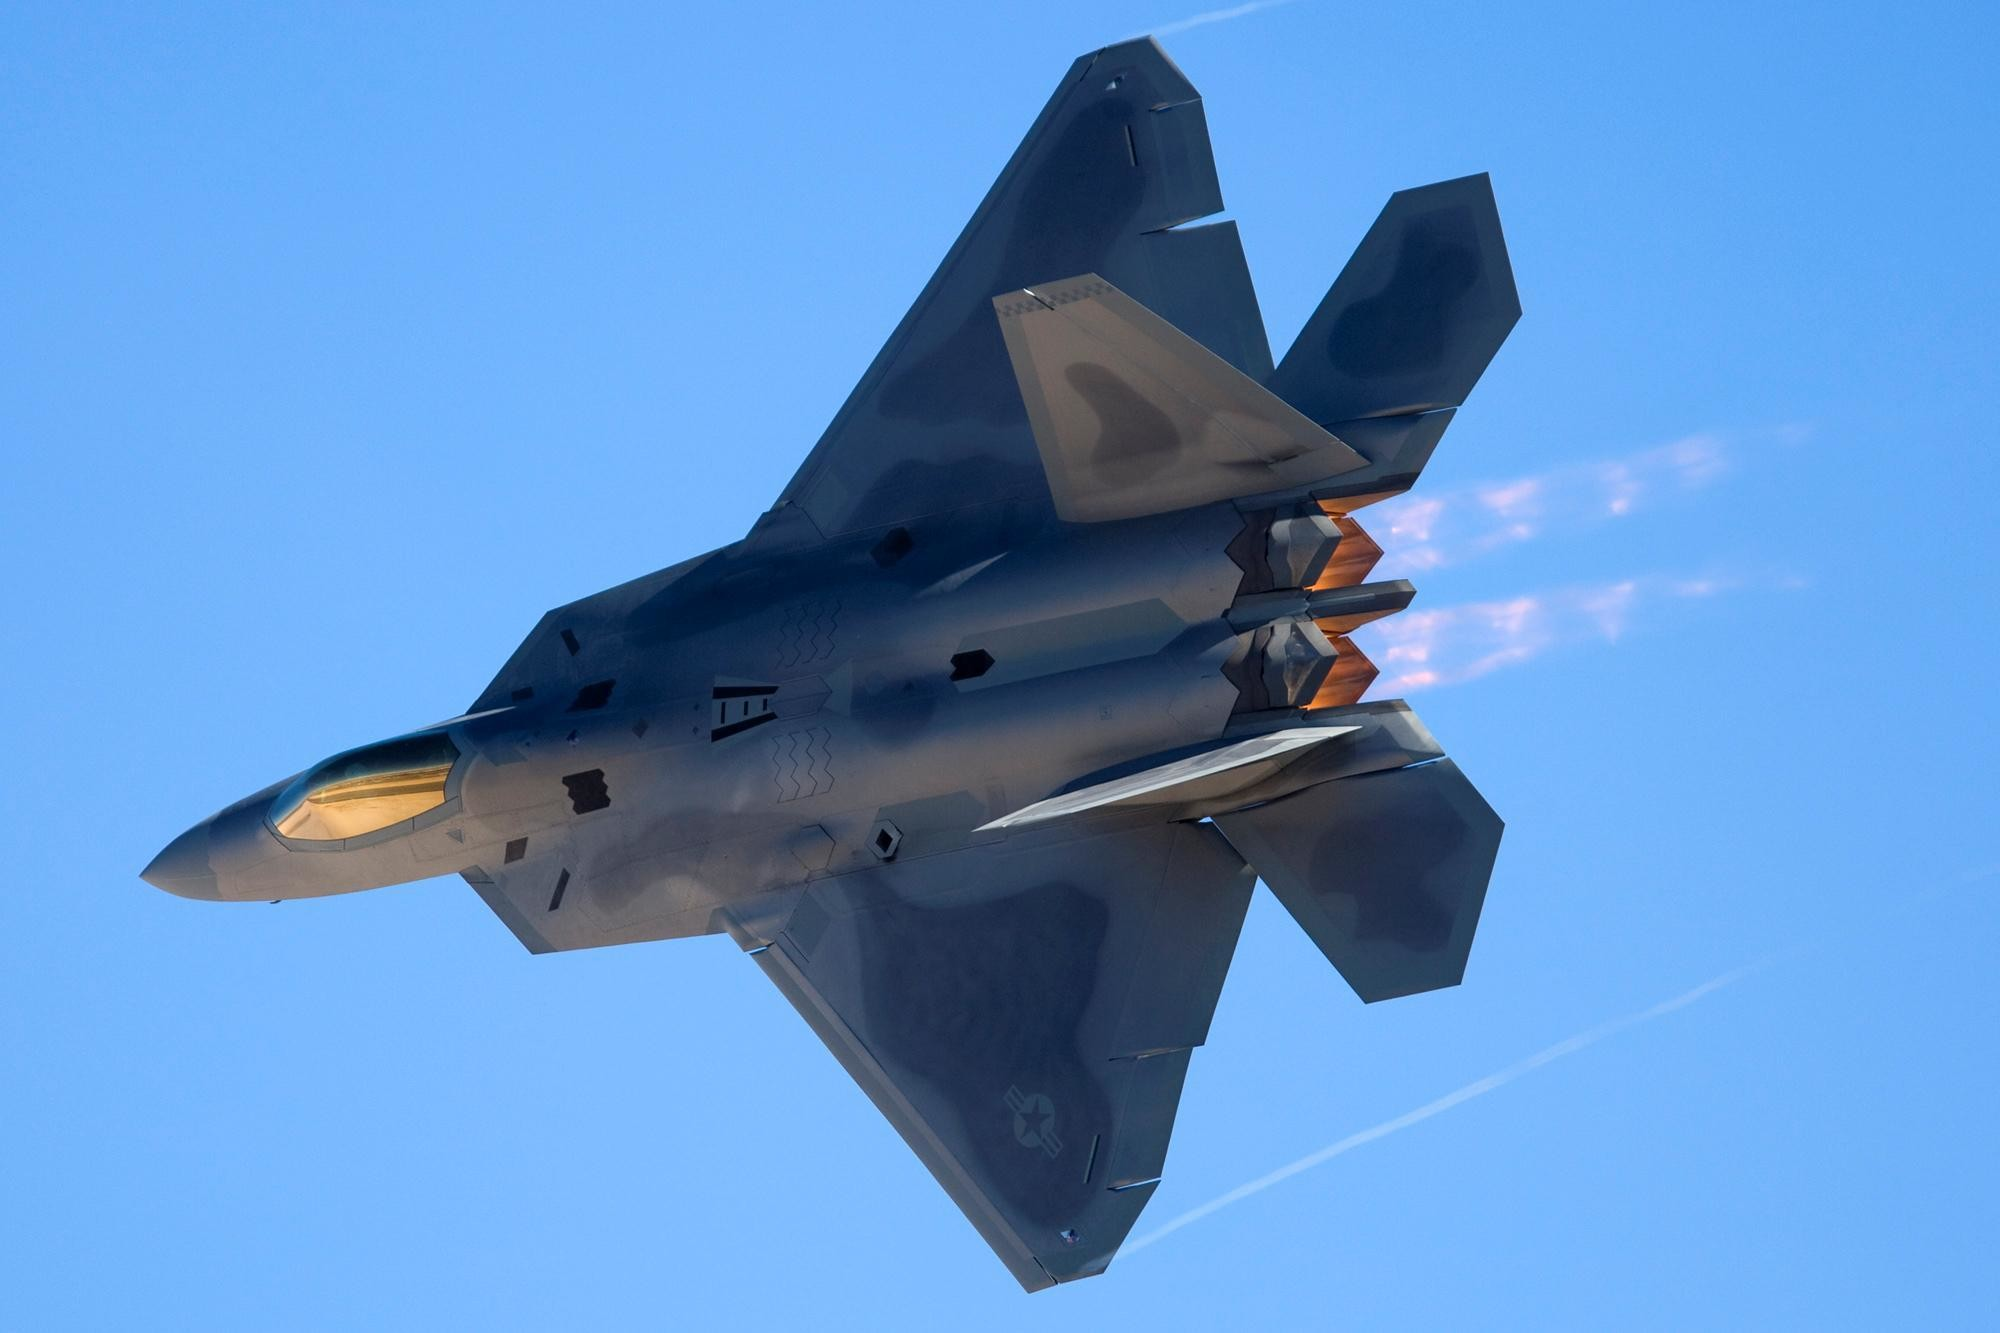 2000x1333 Download F 22 Raptor At Nellis Afb High quality wallpaper